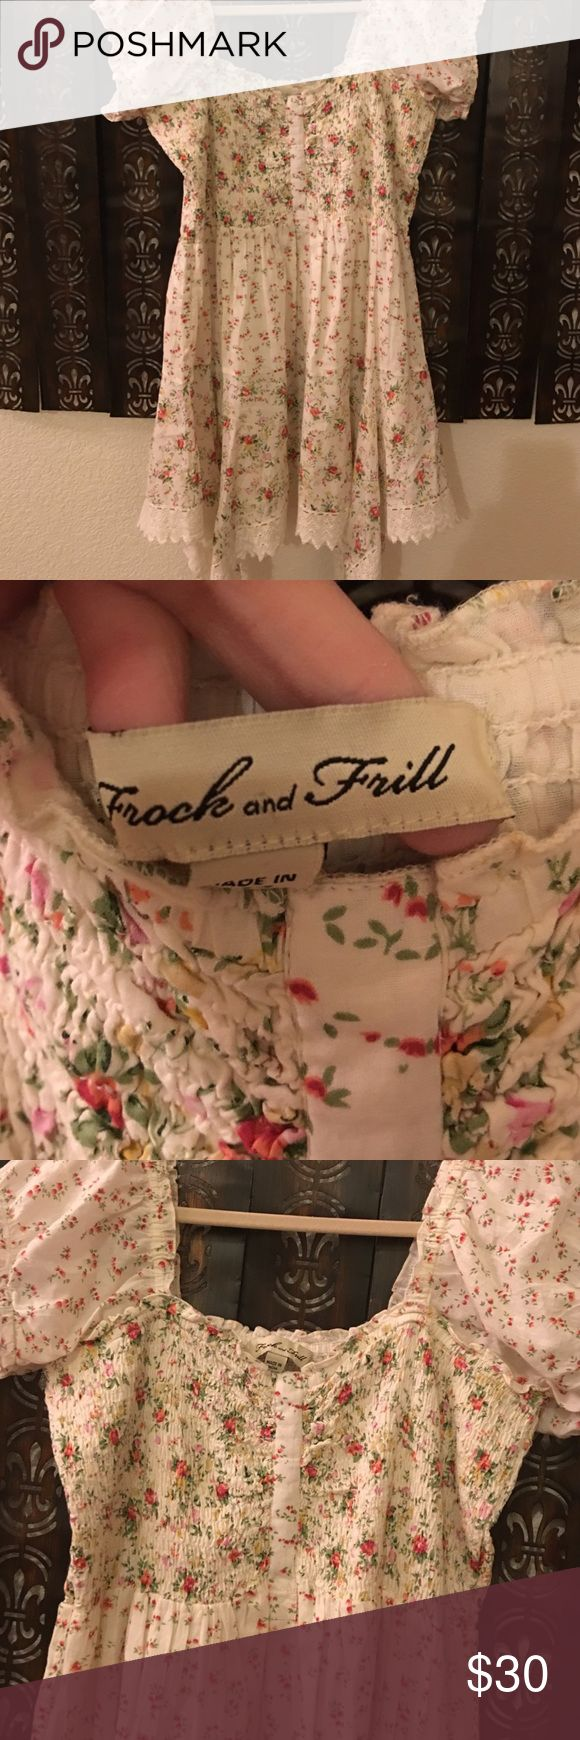 Frock and Frill dress NWT ❤️❤️❤️❤️ Frock and Frill  Dresses